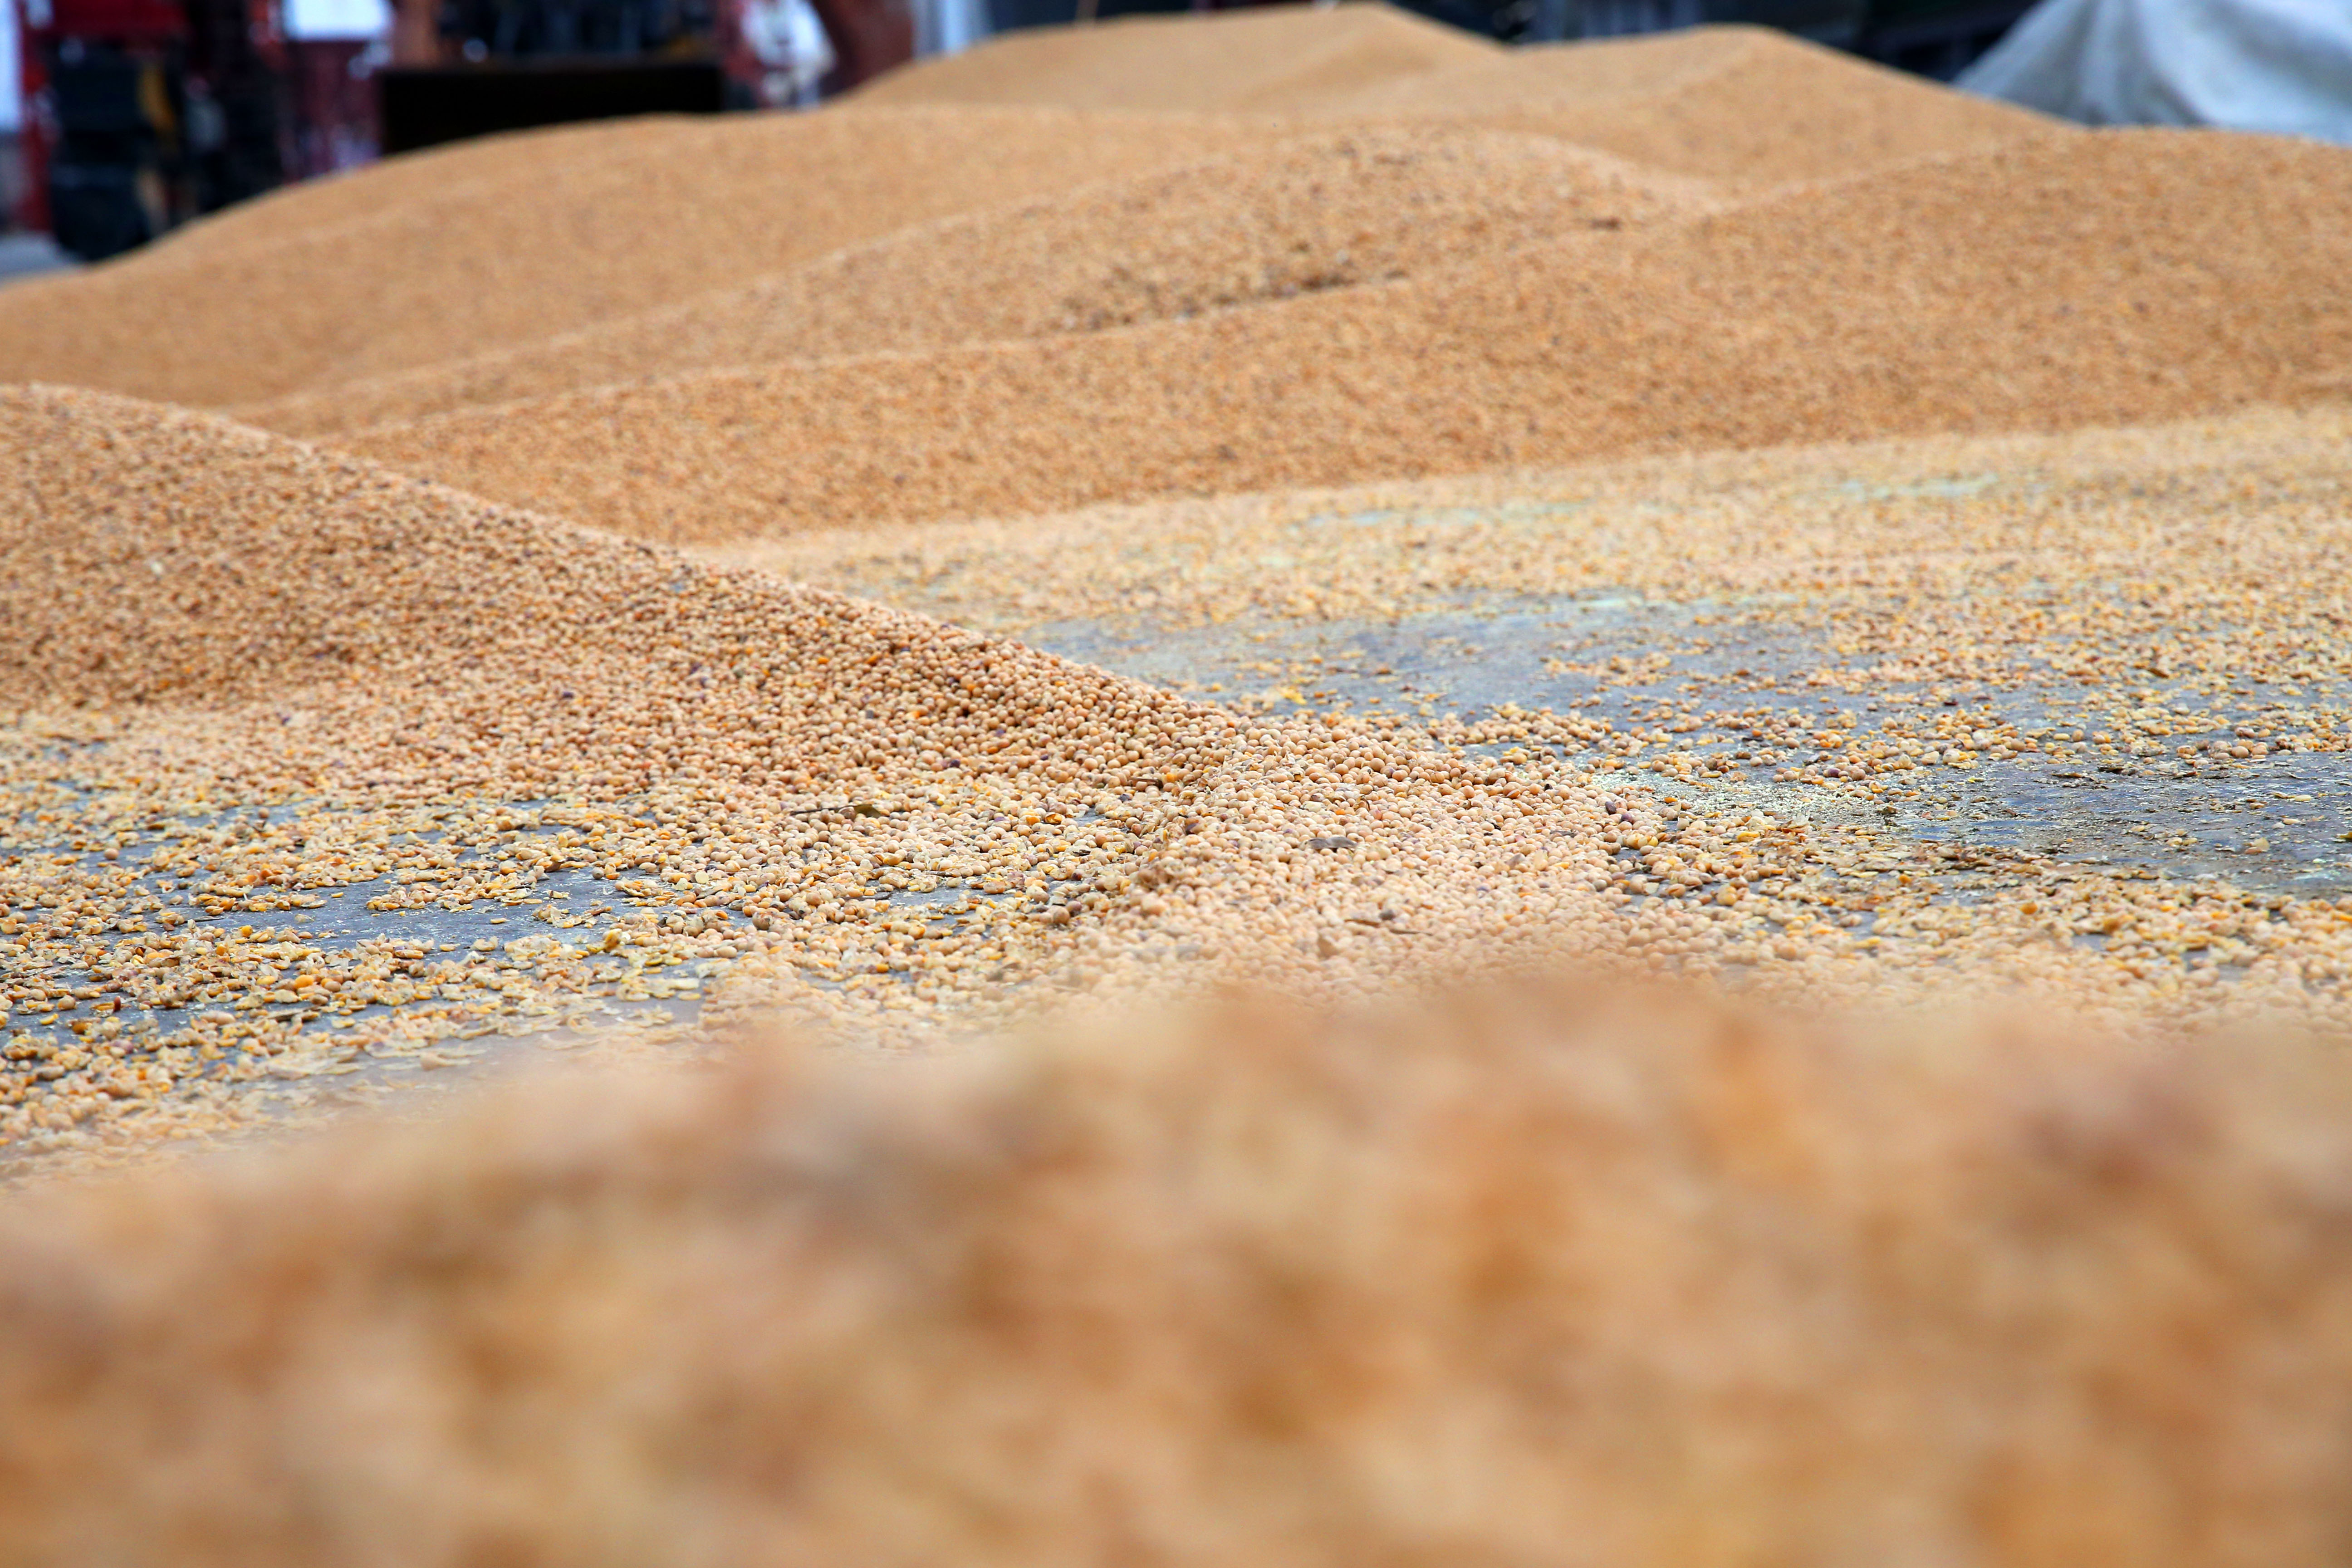 Soybeans imported from Brazil are seen at Nantong Port in August in Nantong, Jiangsu Province of China.